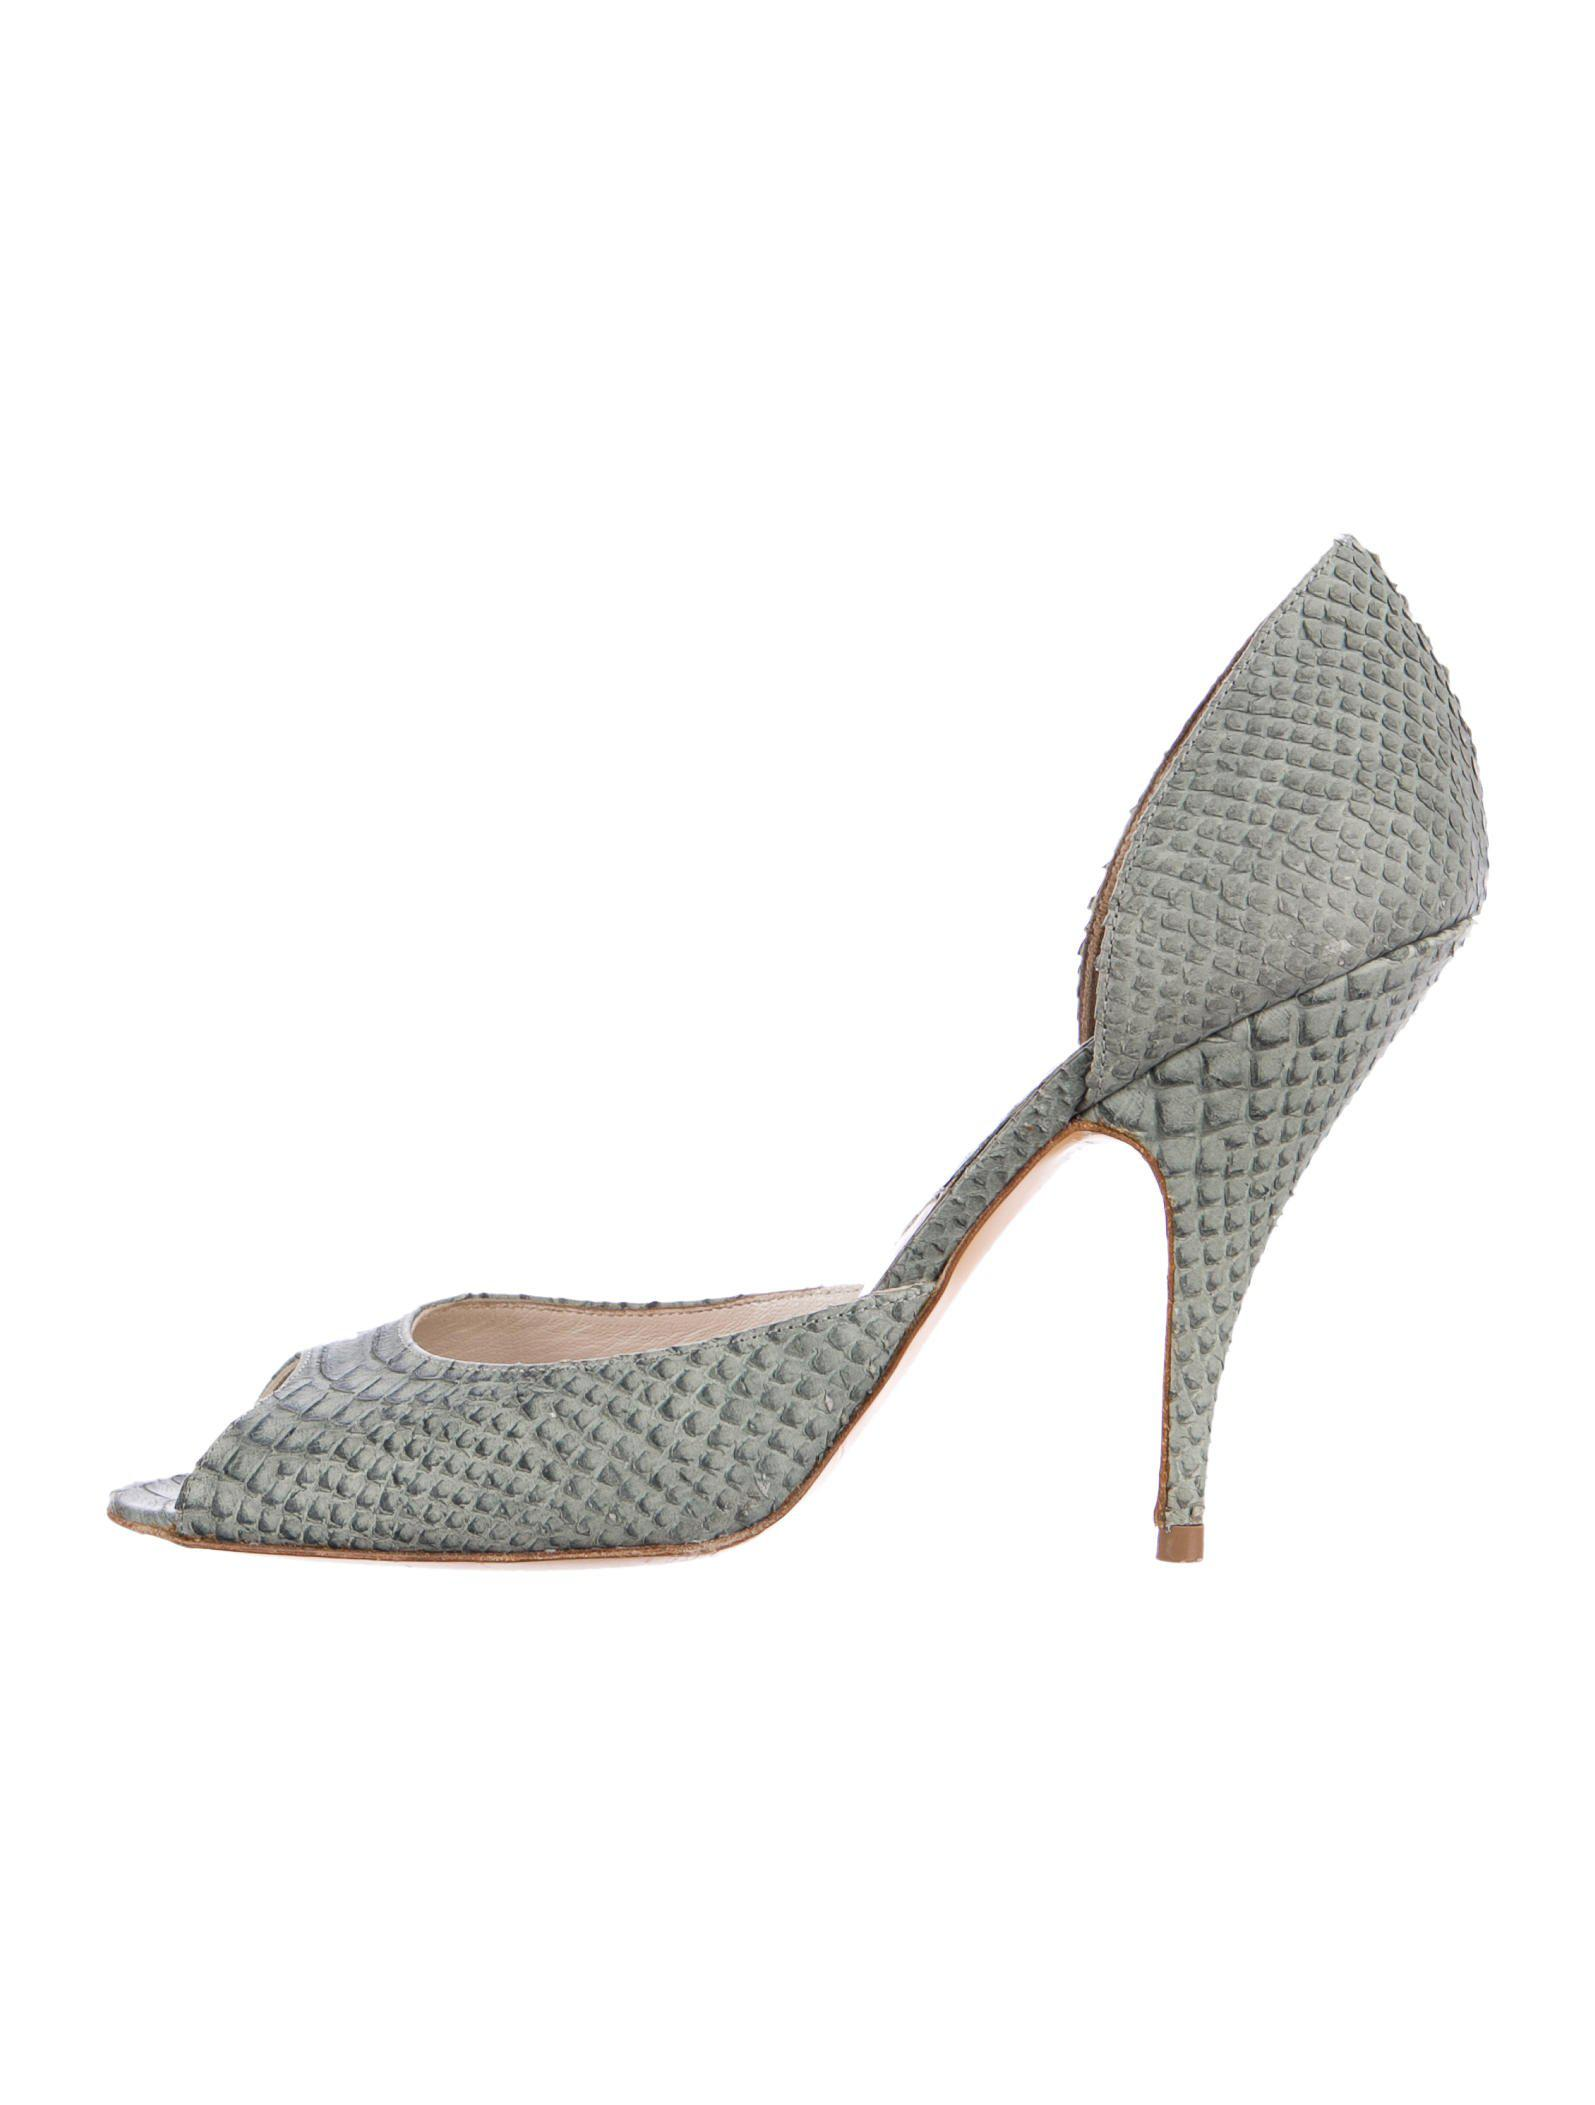 prices for sale free shipping hot sale Christian Dior Embossed d'Orsay Pumps clearance shopping online pay with visa sale online buy cheap fashion Style vJulQ34